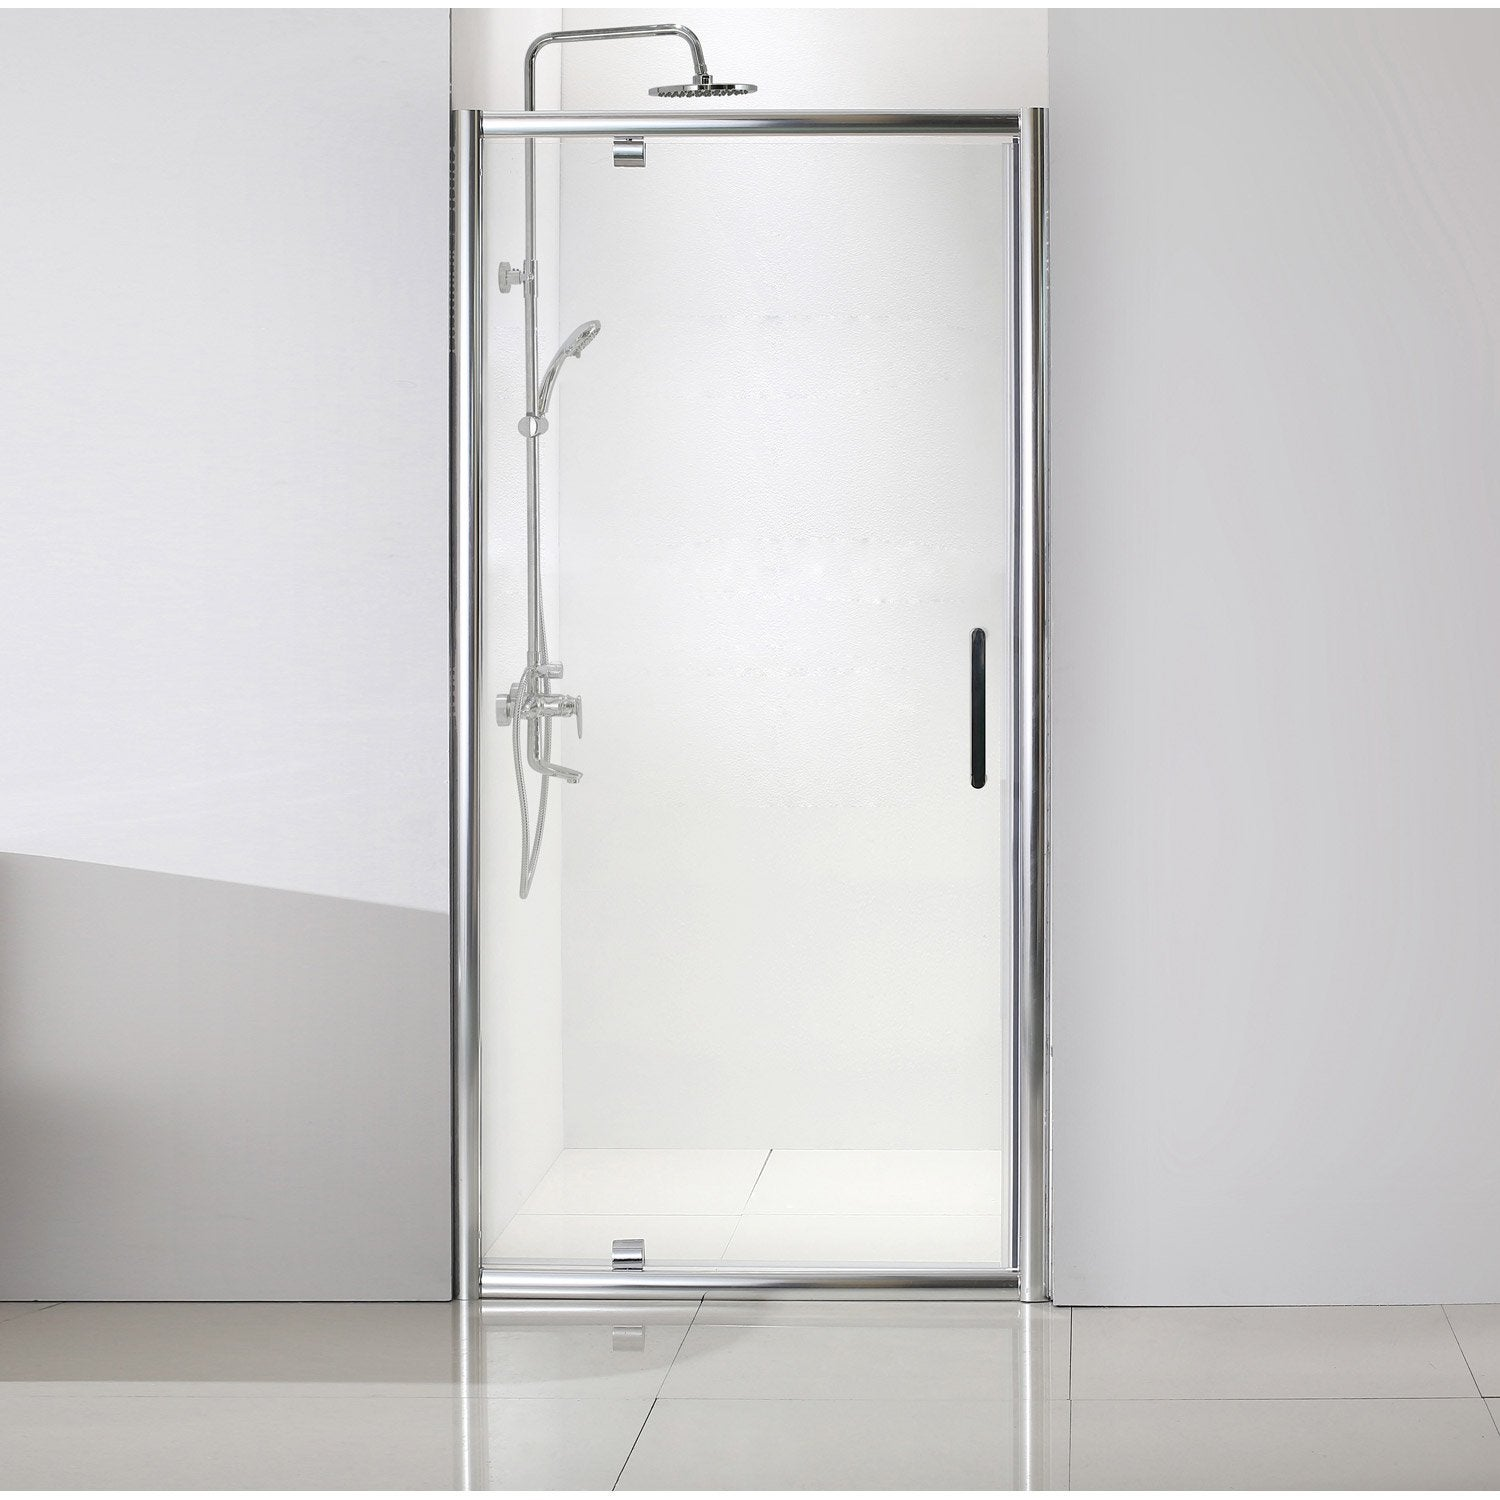 porte de douche pivotante 100 cm transparent quad leroy merlin. Black Bedroom Furniture Sets. Home Design Ideas